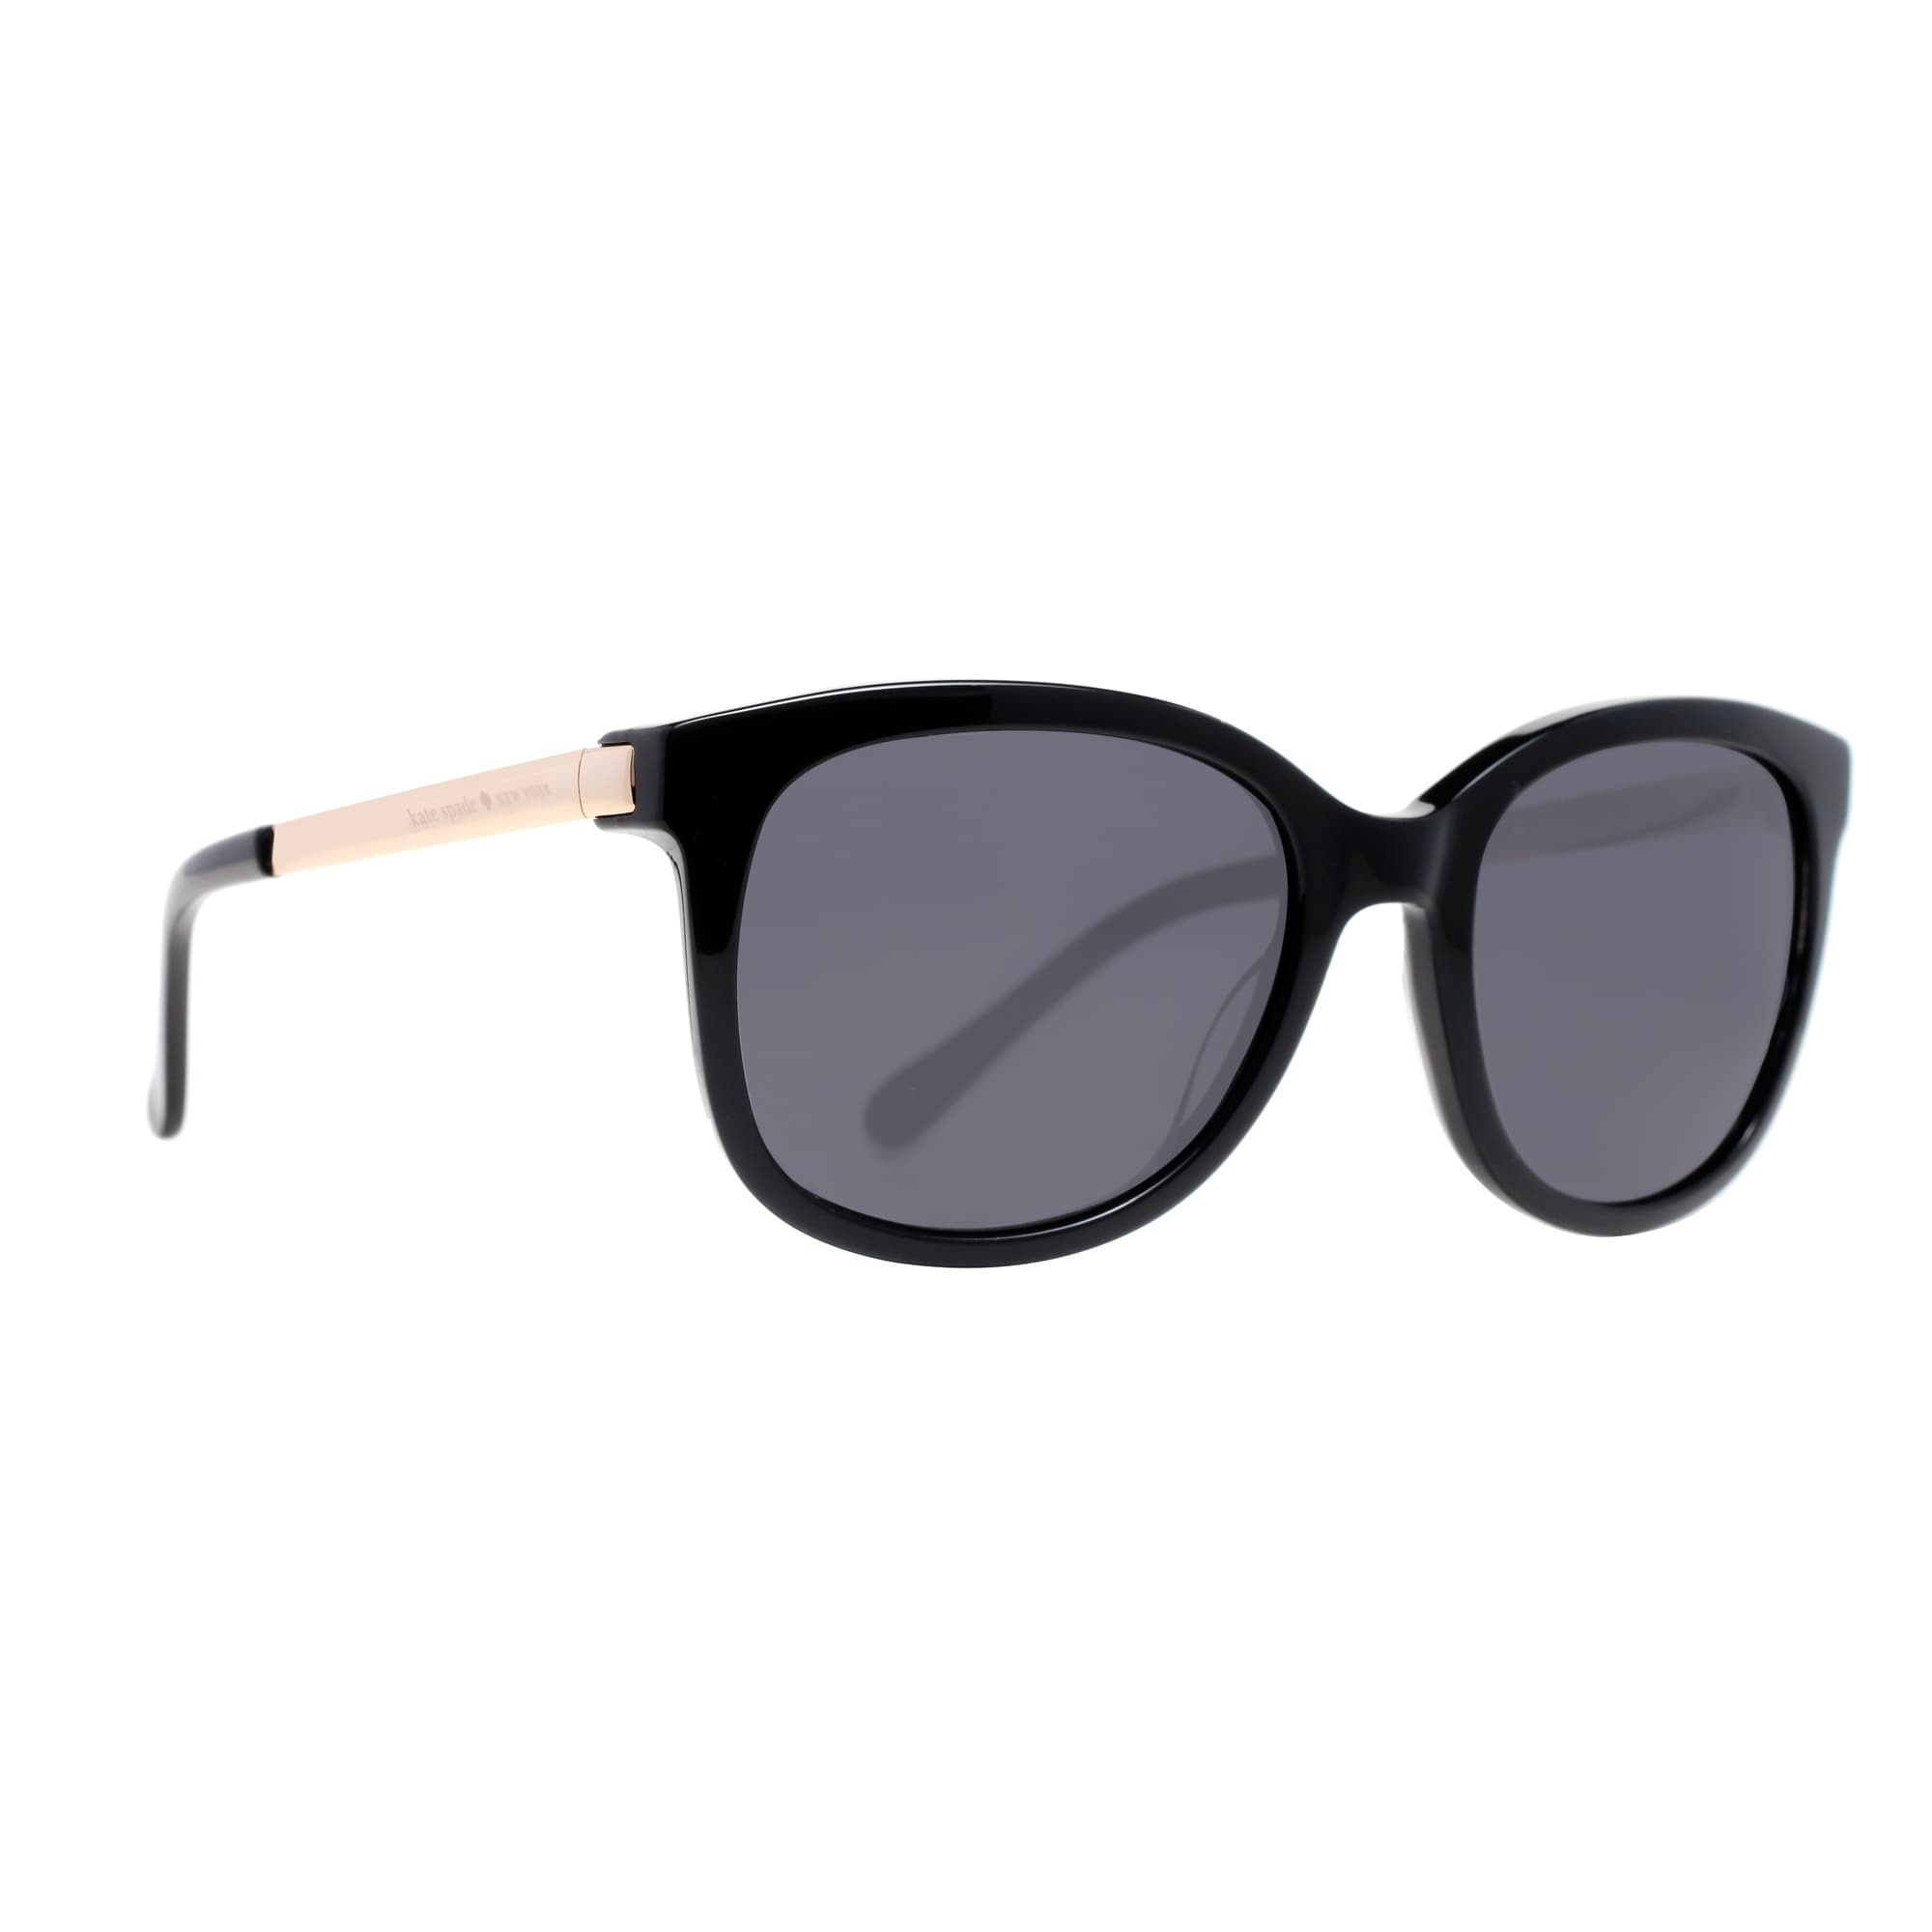 4a18aceca5 Shop KATE SPADE Oval Gayla S Women s 807 BN Shiny Black Gold Gray Sunglasses  - 52mm-19mm-130mm - Free Shipping Today - Overstock - 13880809